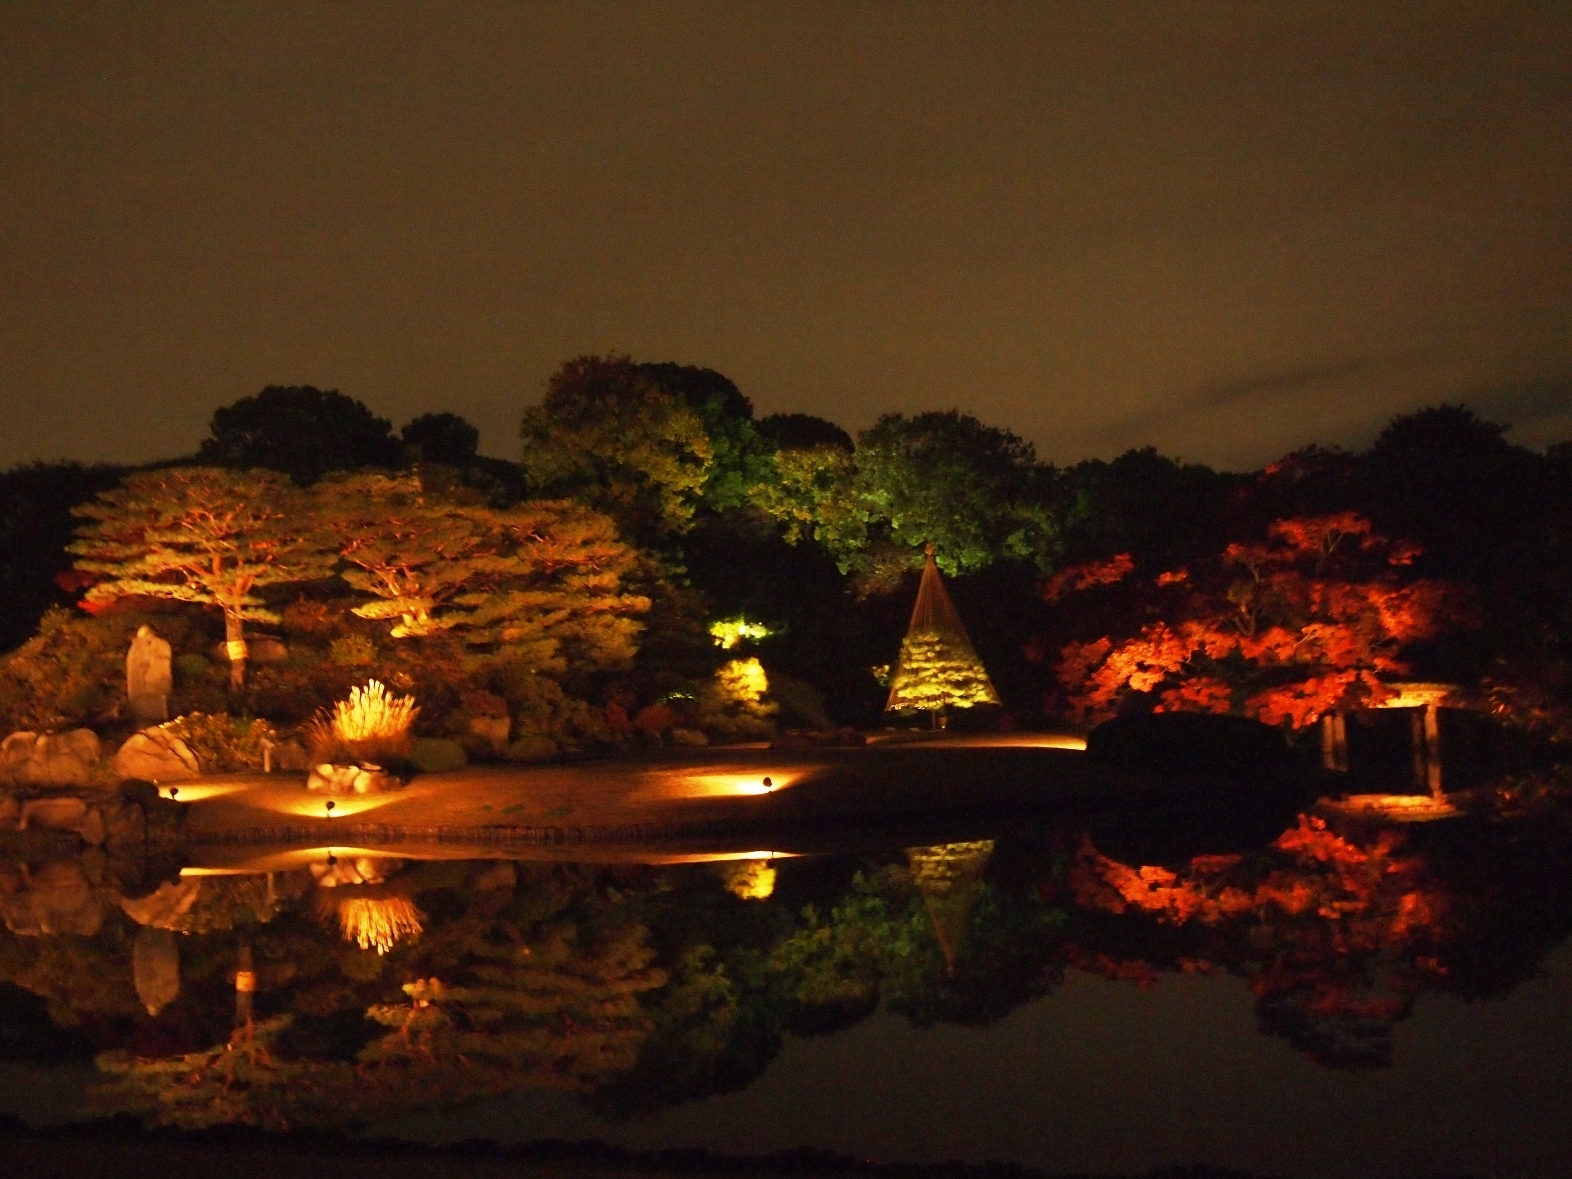 Rikugien Autumn Light Up | Life To Reset intended for Rikugien Garden Autumn Light Up